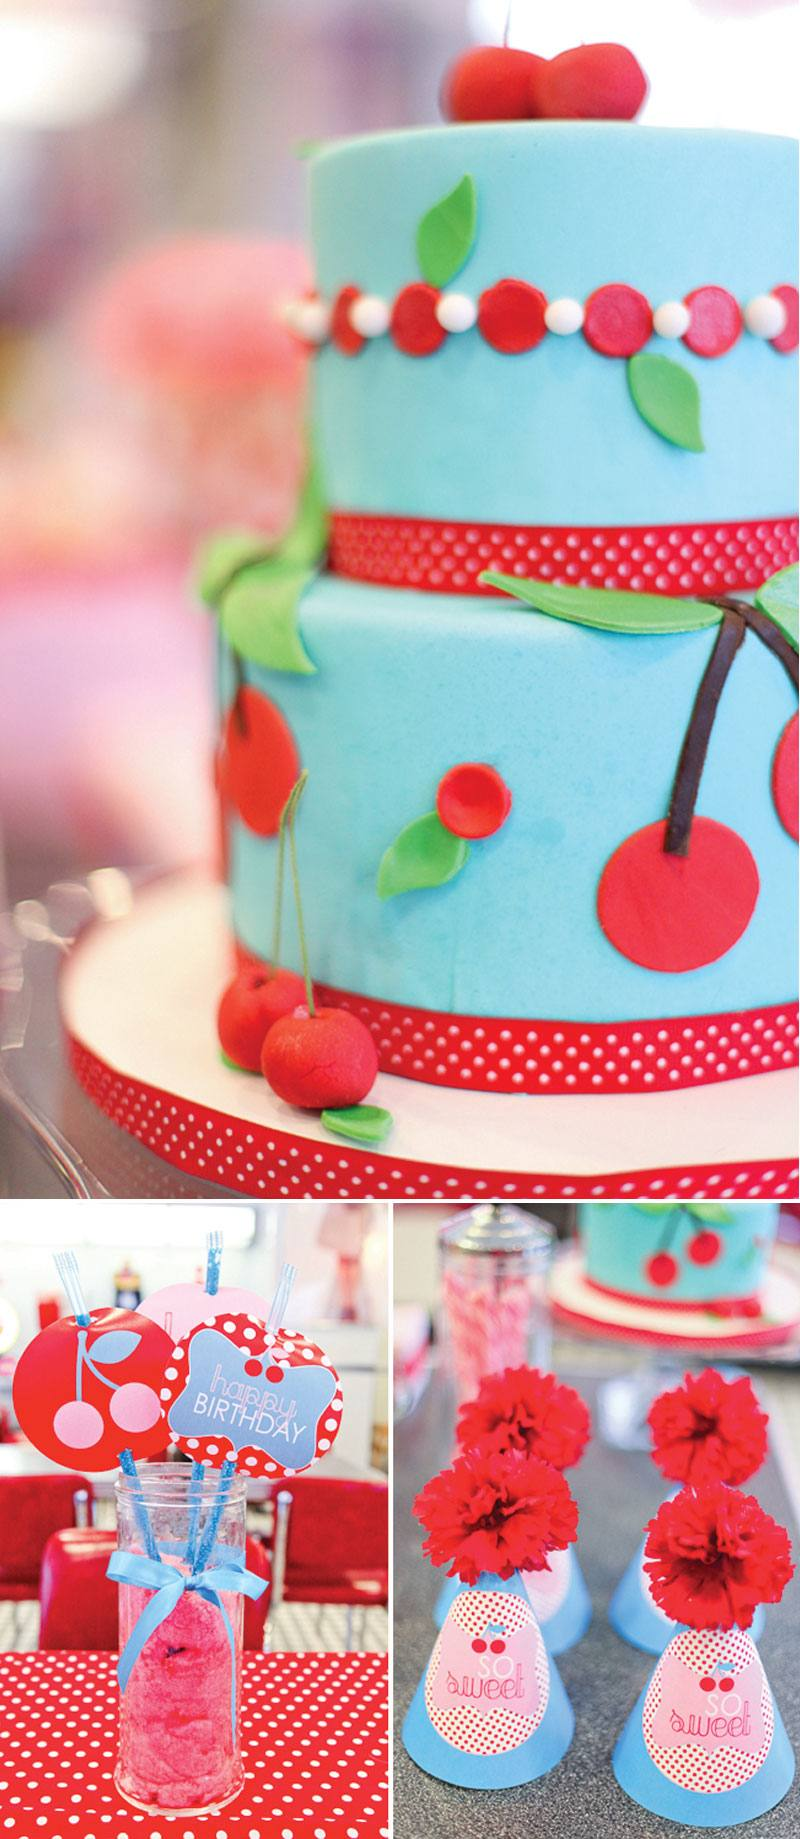 Retro Cherry Party by Lindi Haws of Love The Day